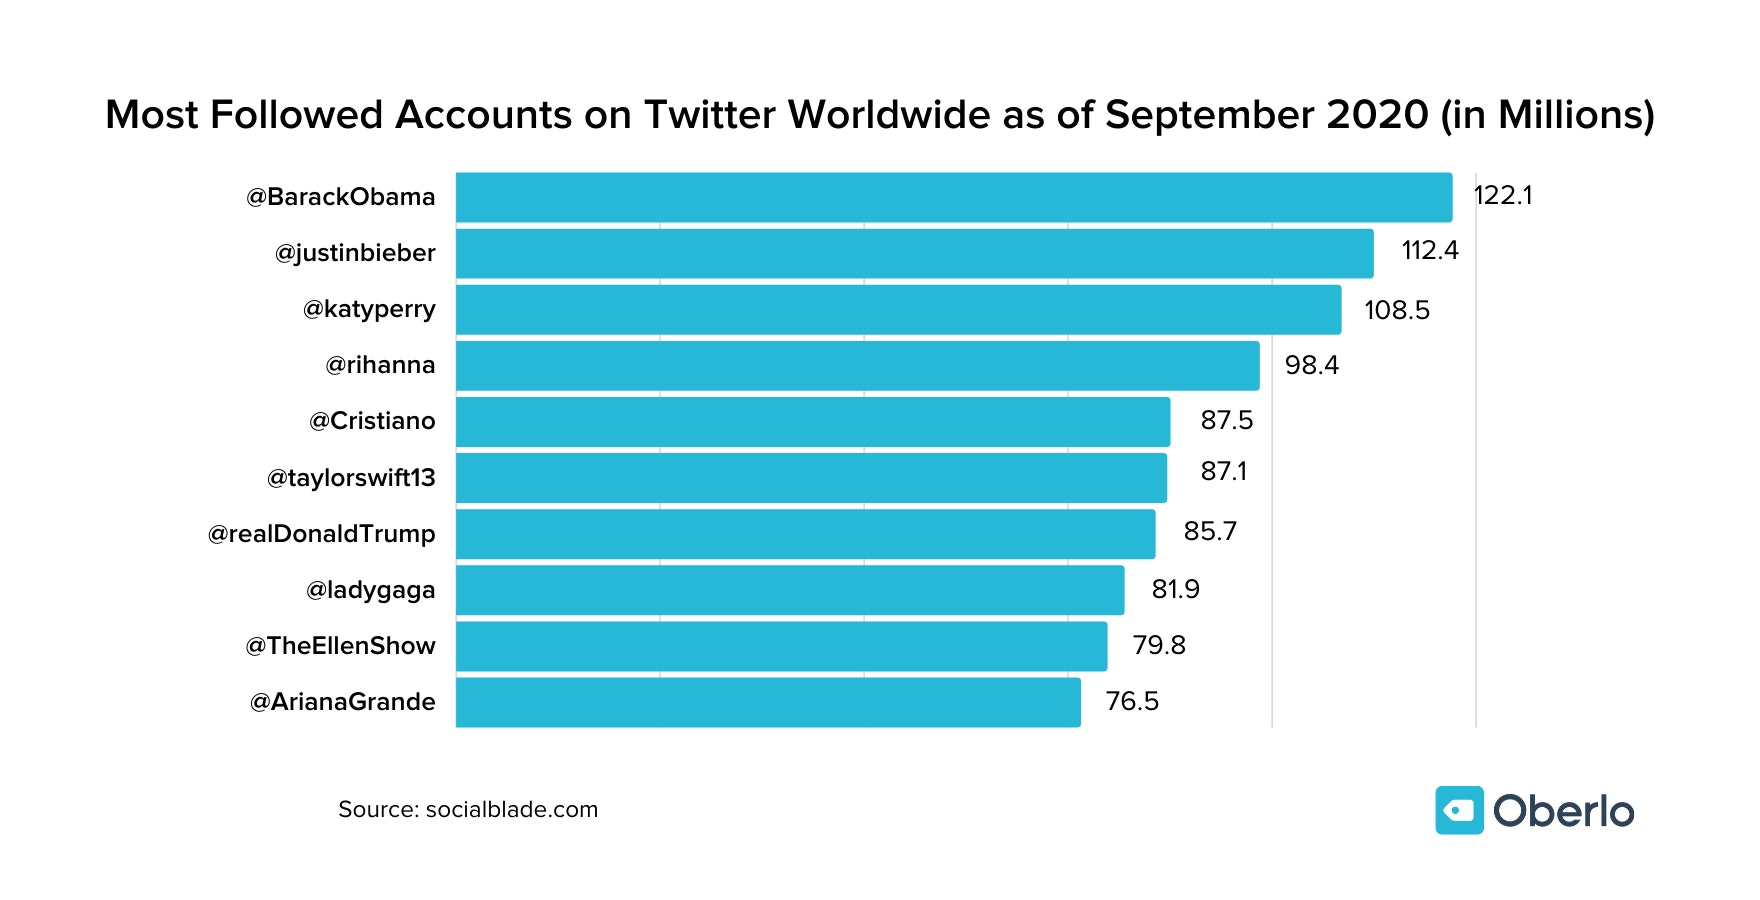 Most Followed Accounts on Twitter Worldwide as of September 2020 (in Millions)